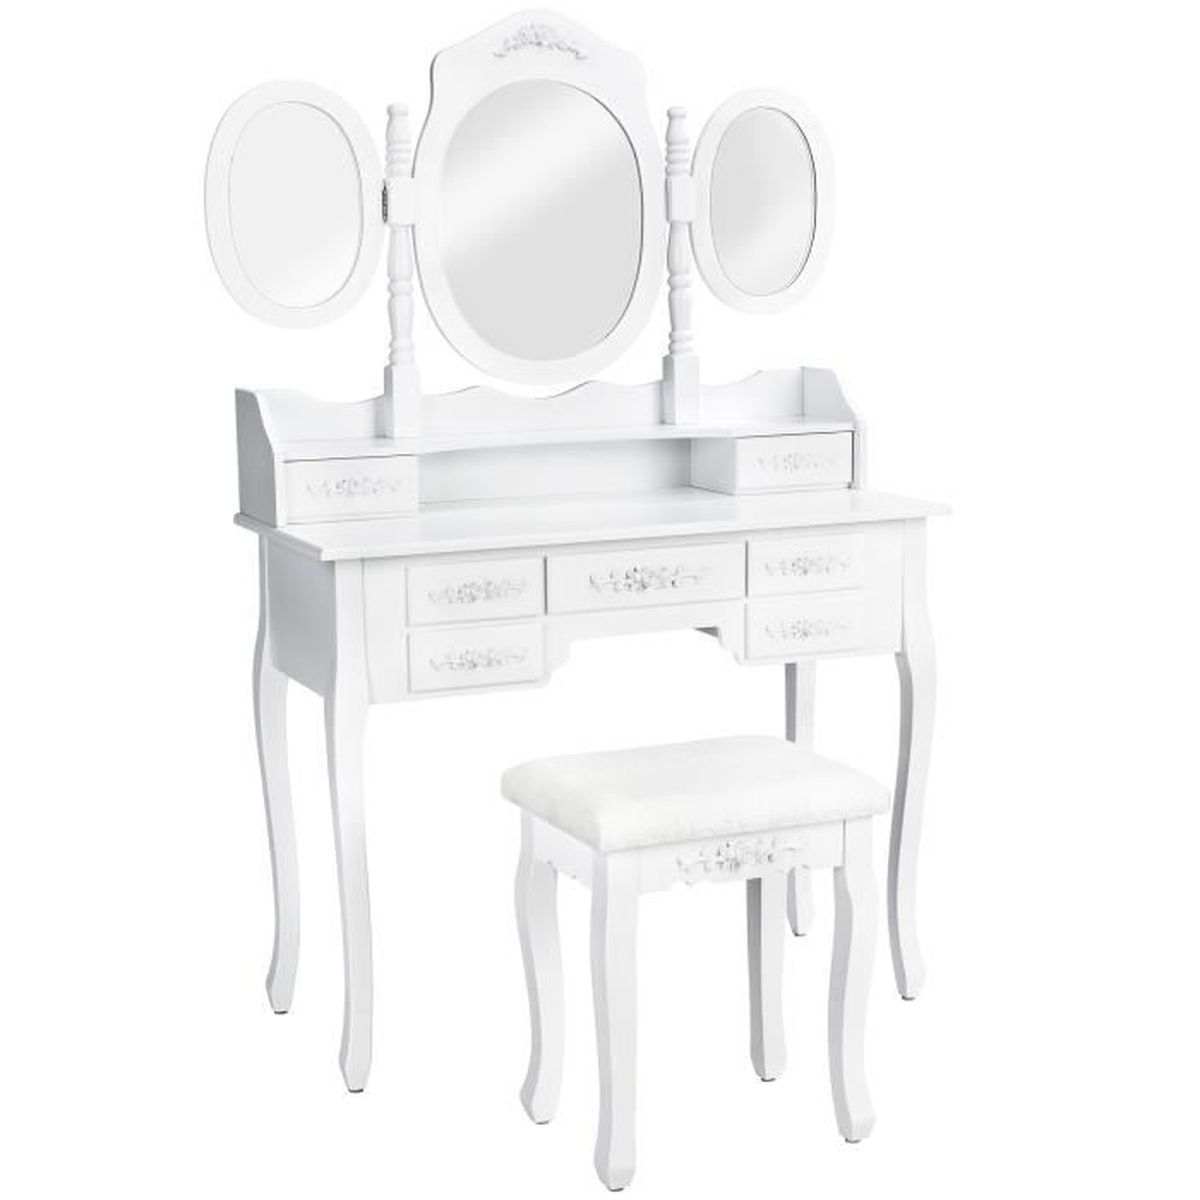 coiffeuse meuble table de maquillage secr taire commode avec miroir 3 faces rabattables et 7. Black Bedroom Furniture Sets. Home Design Ideas